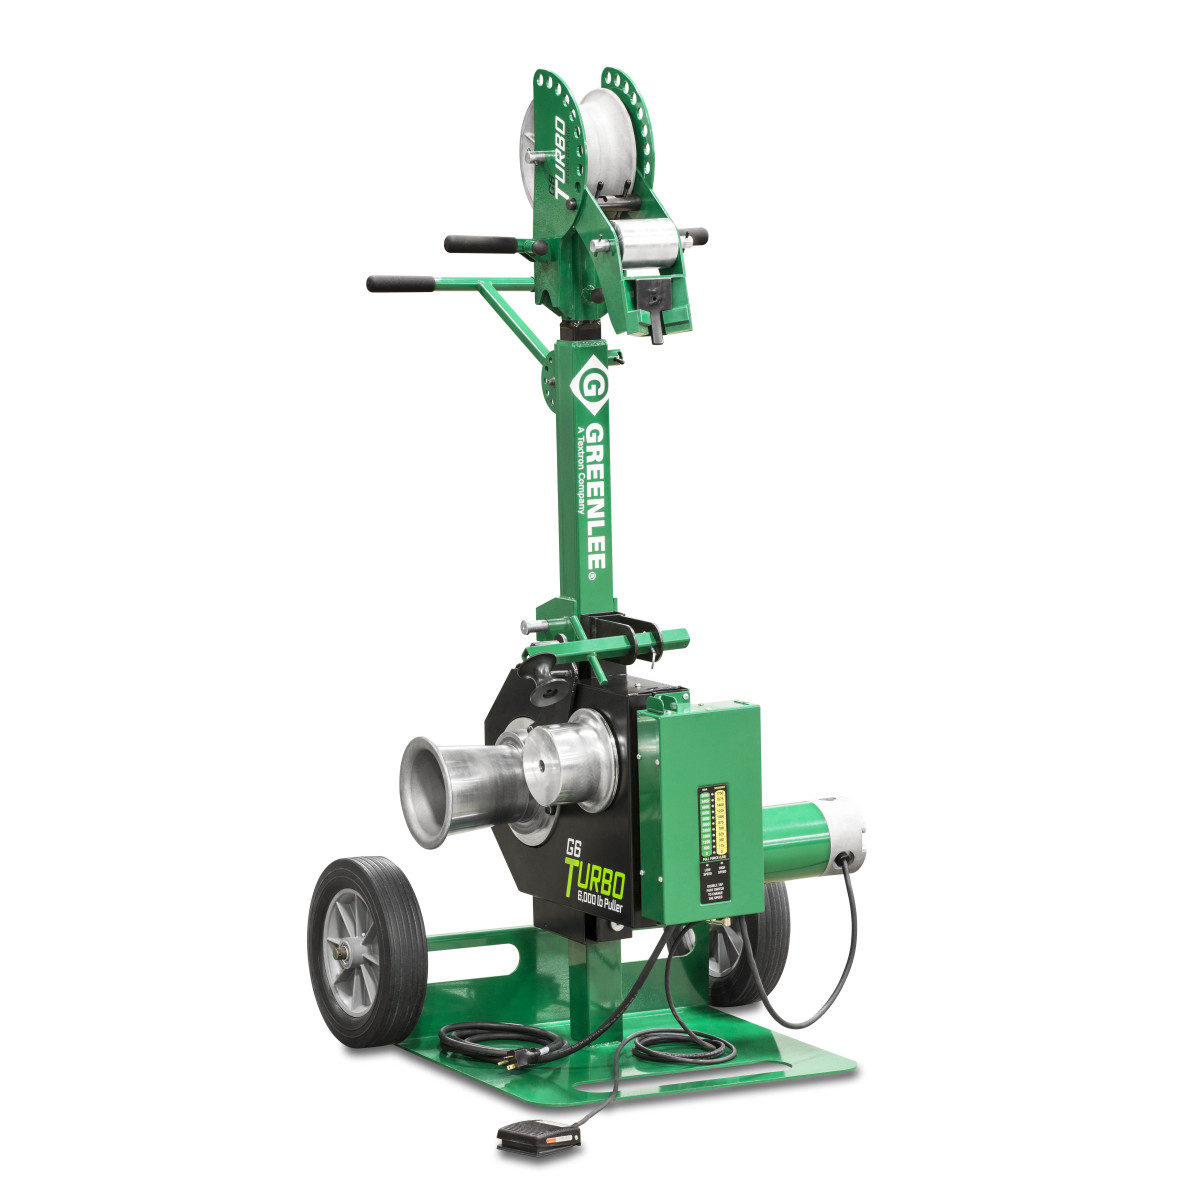 G6 GREENLEE TURBO CABLE PULLER 6000 LB RATED